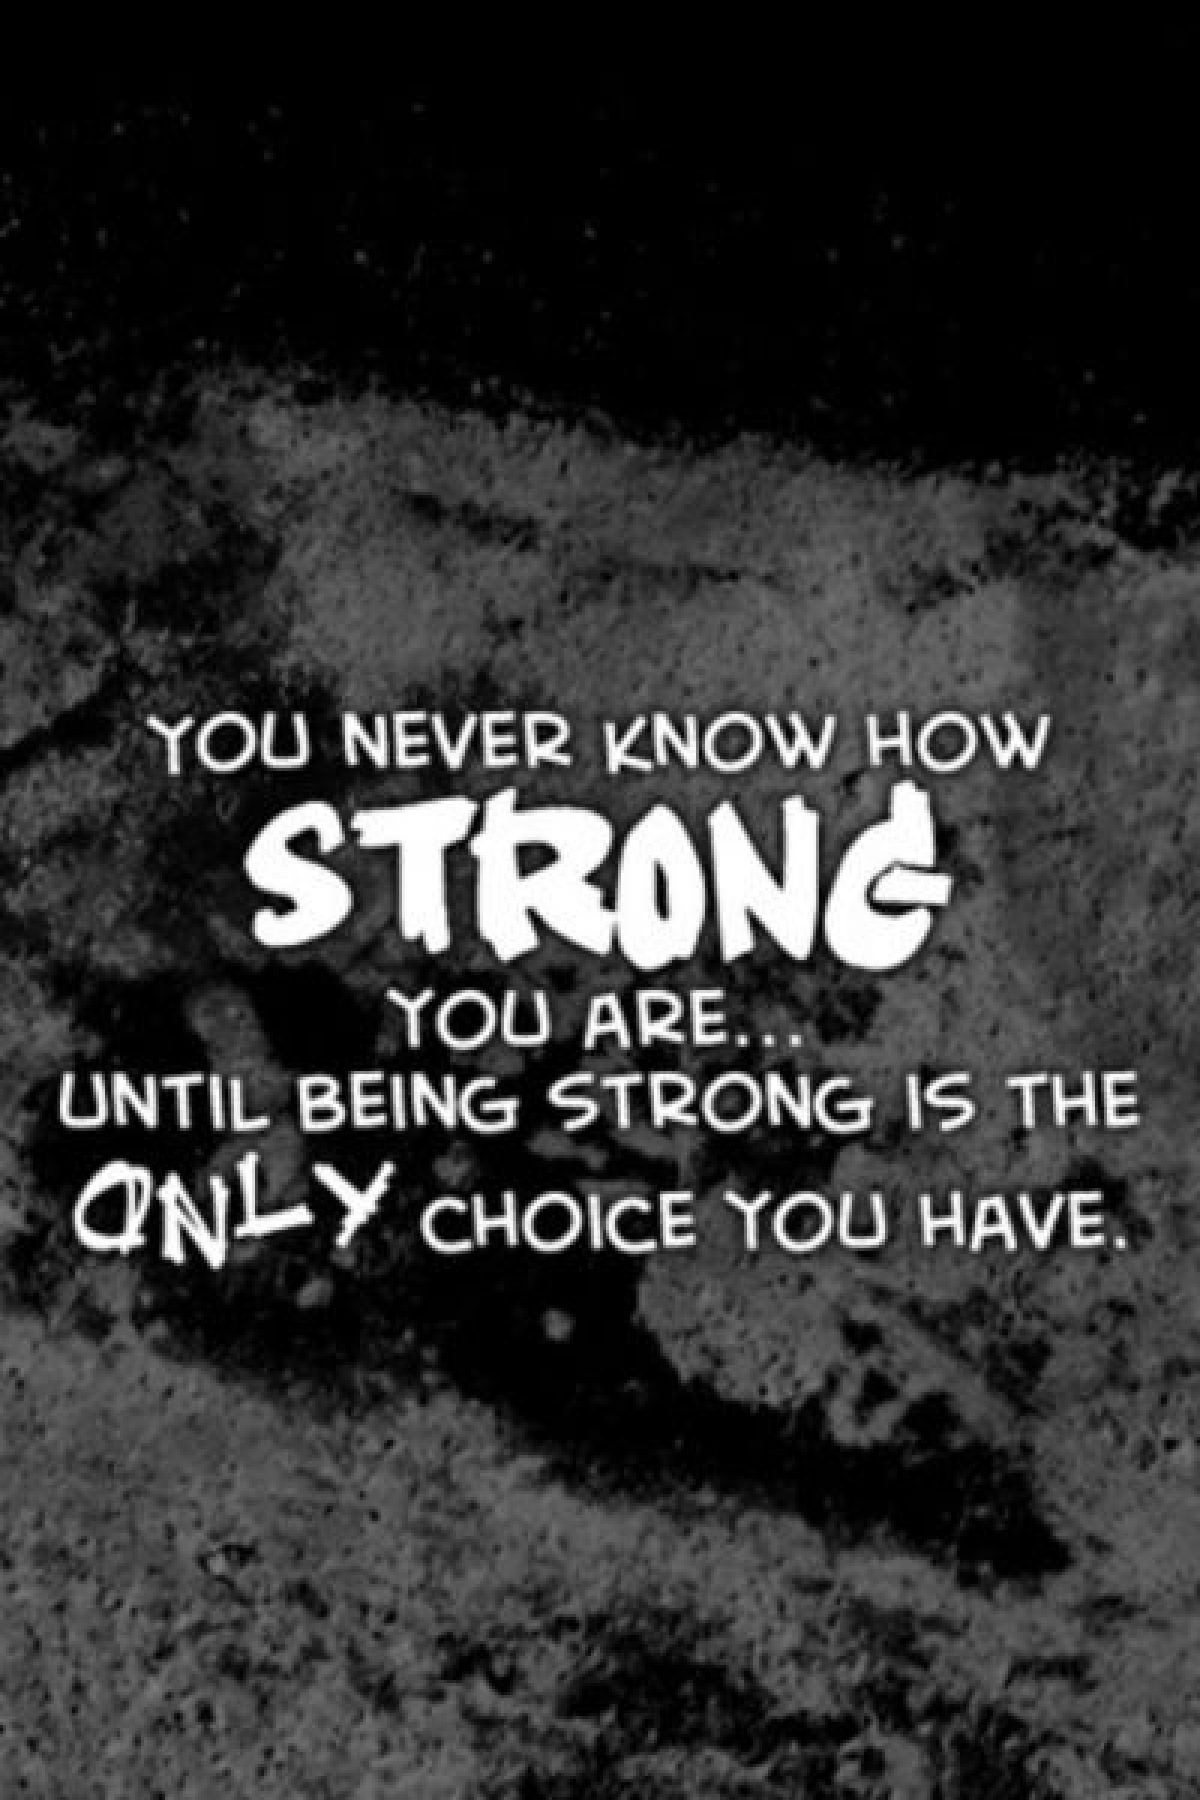 100 Best Mental Strength And Toughness Quotes For Powerful Motivation